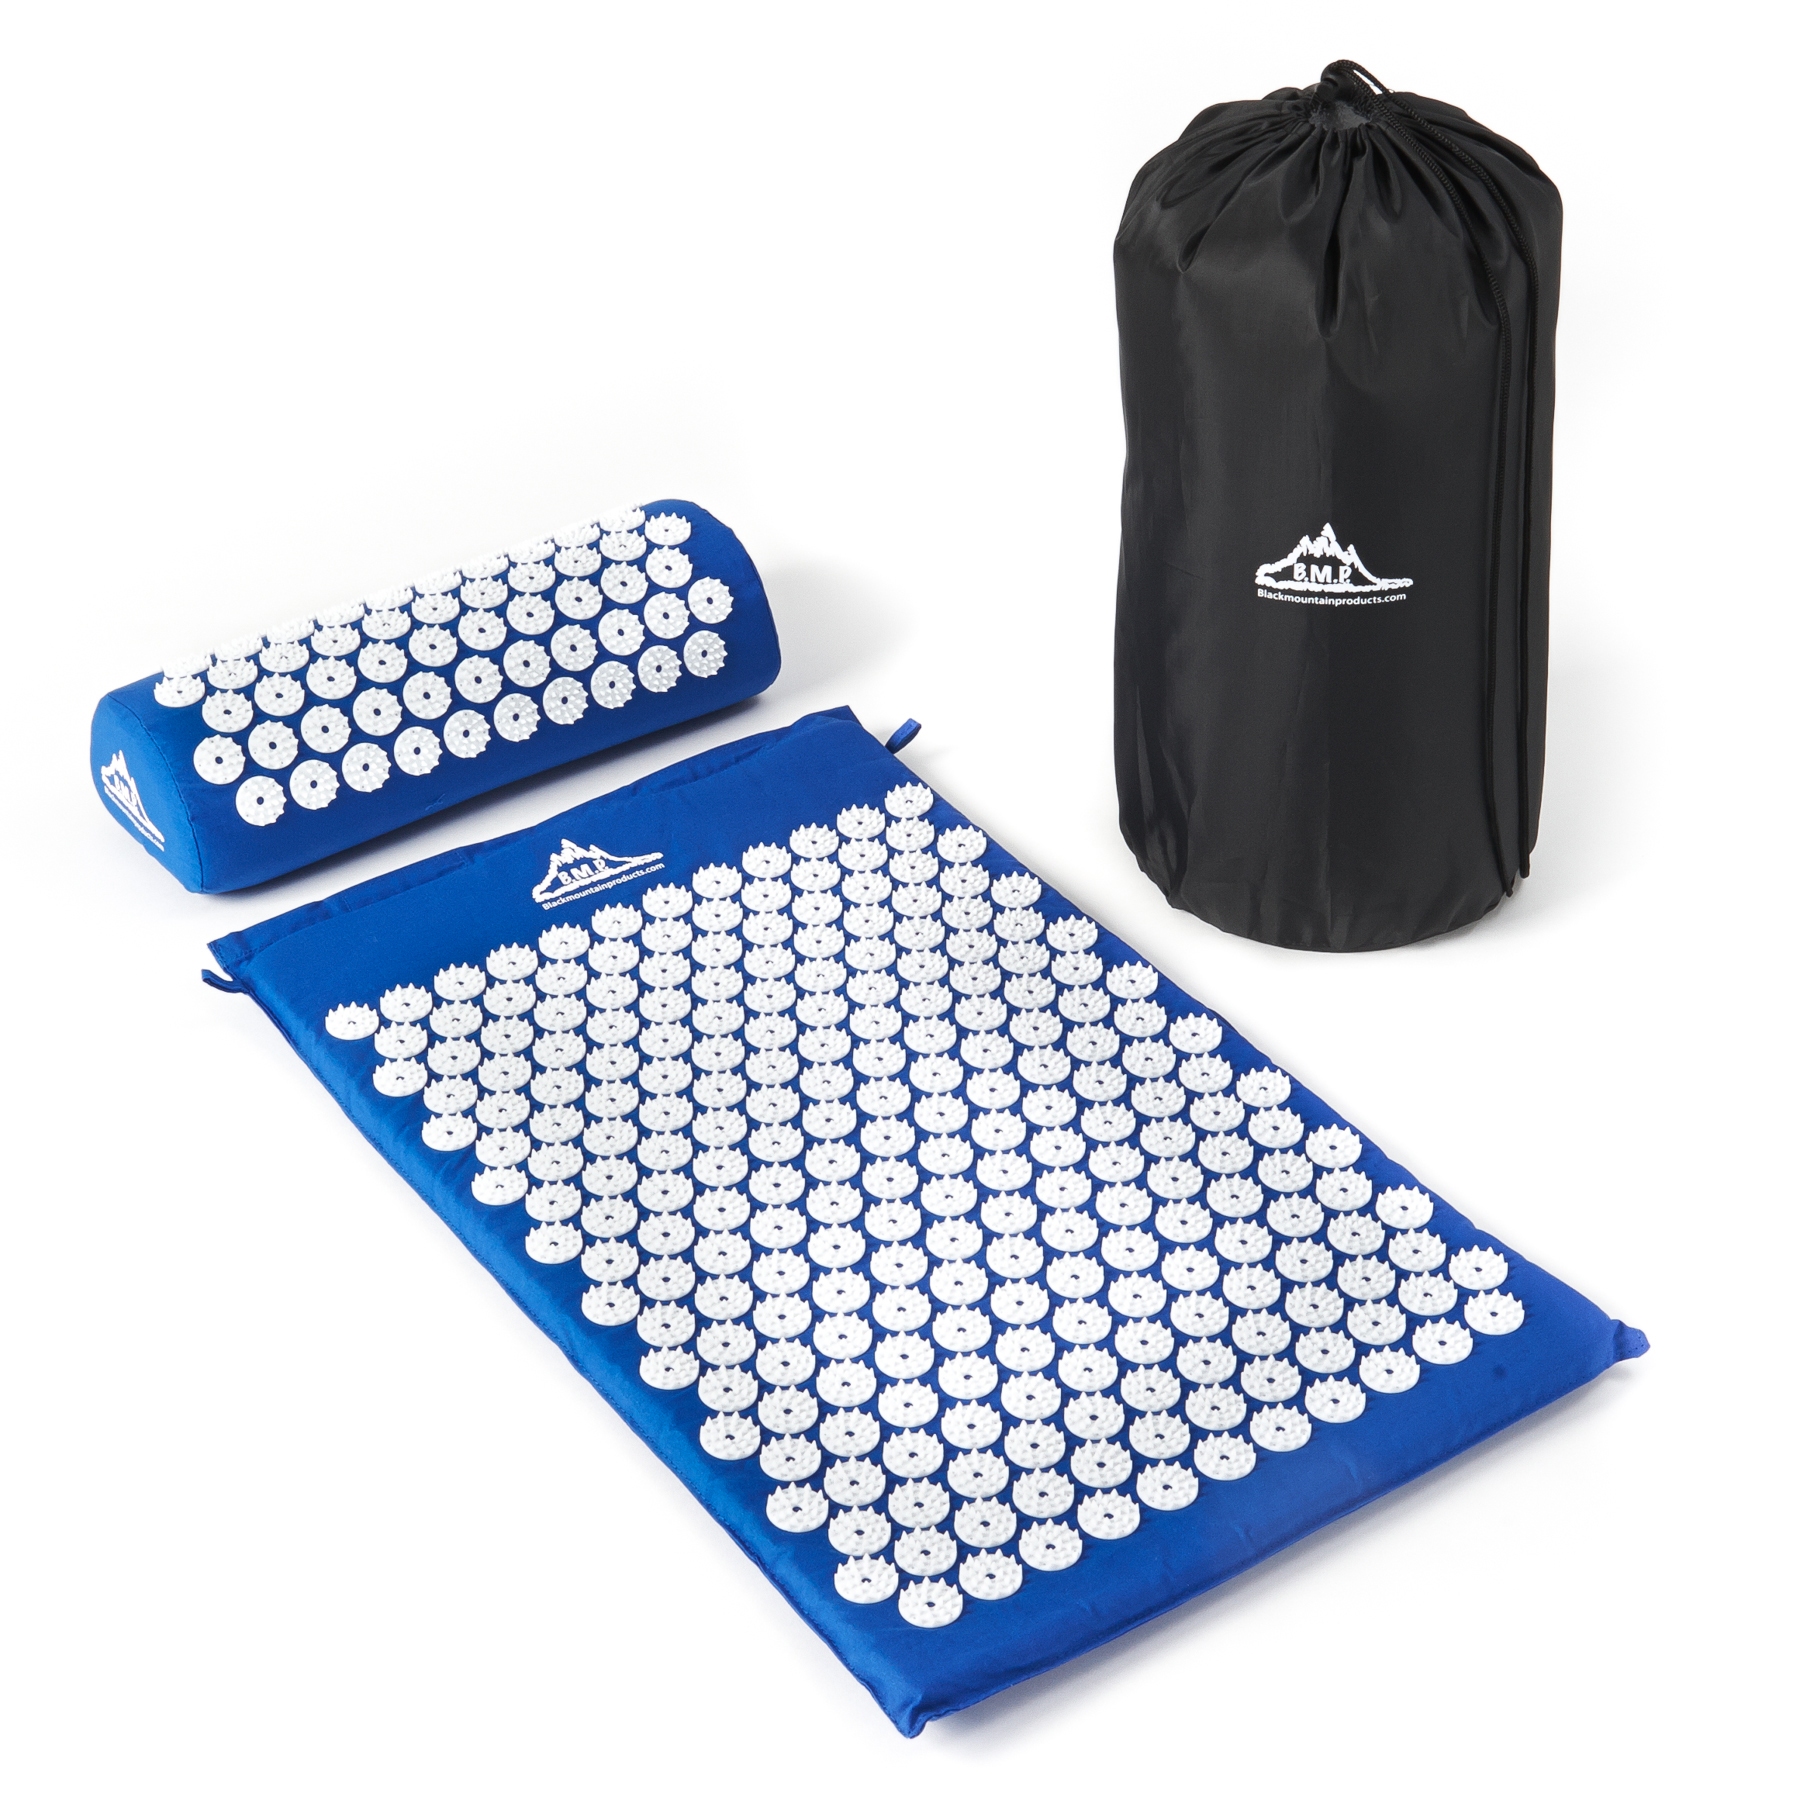 Black Mountain Products Acupressure Mat With Pillow And